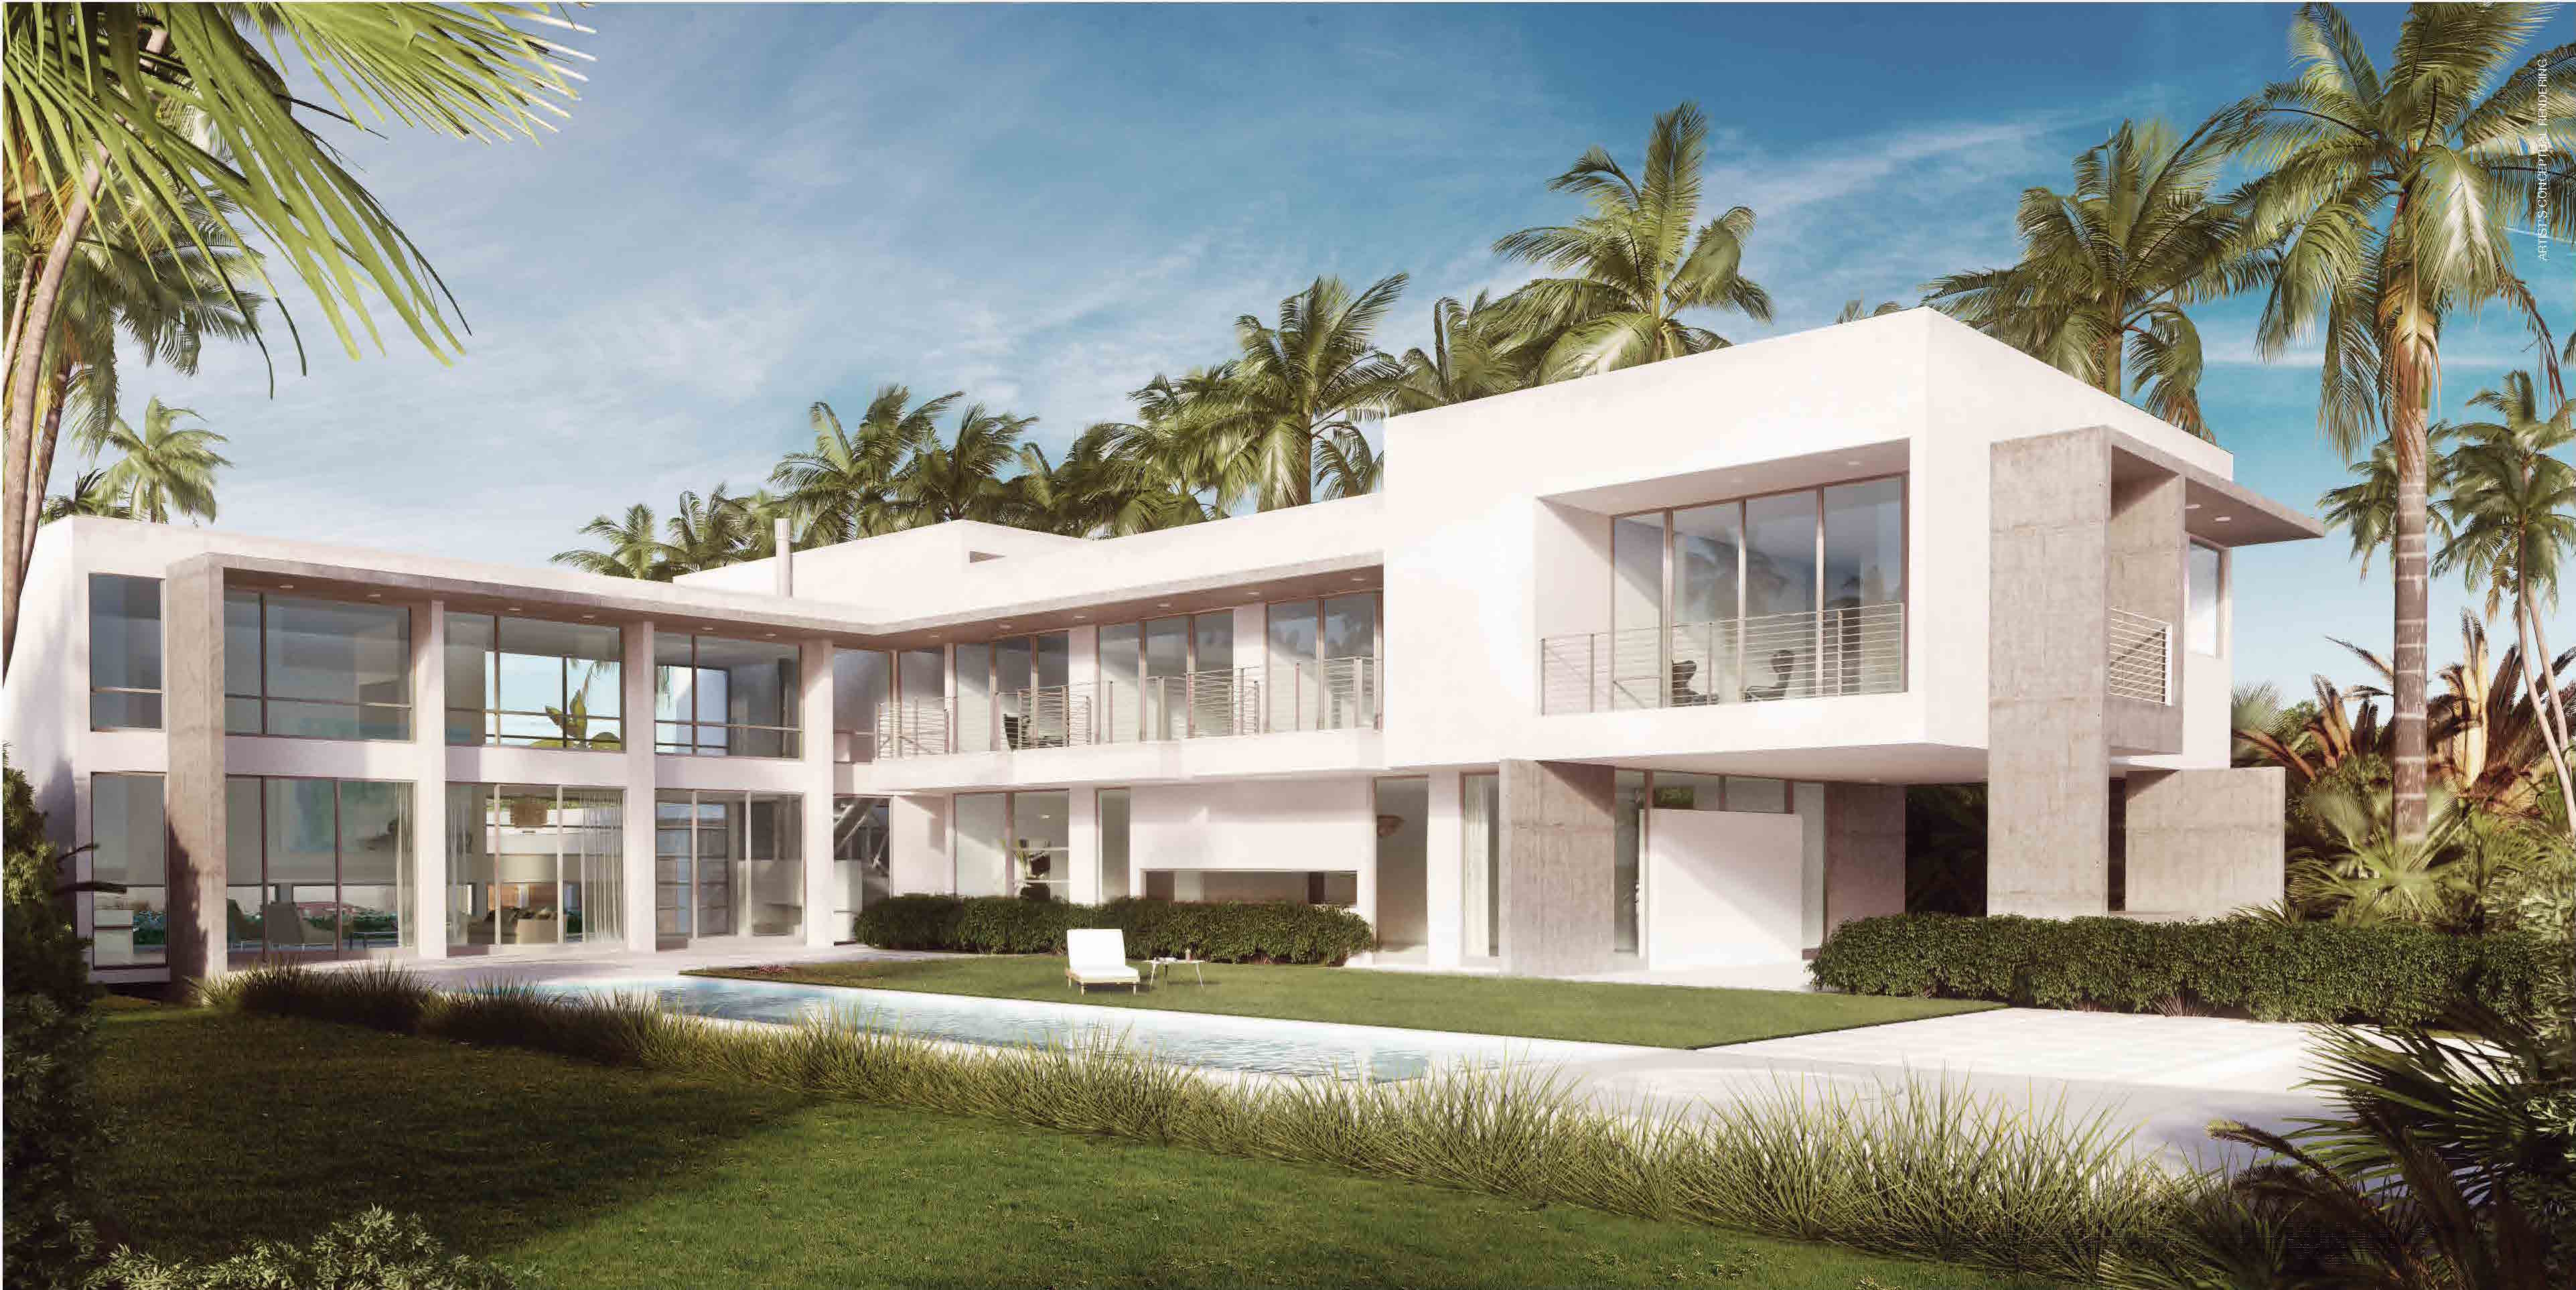 Botaniko weston ultra modern luxury in weston florida Modern house 1 floor